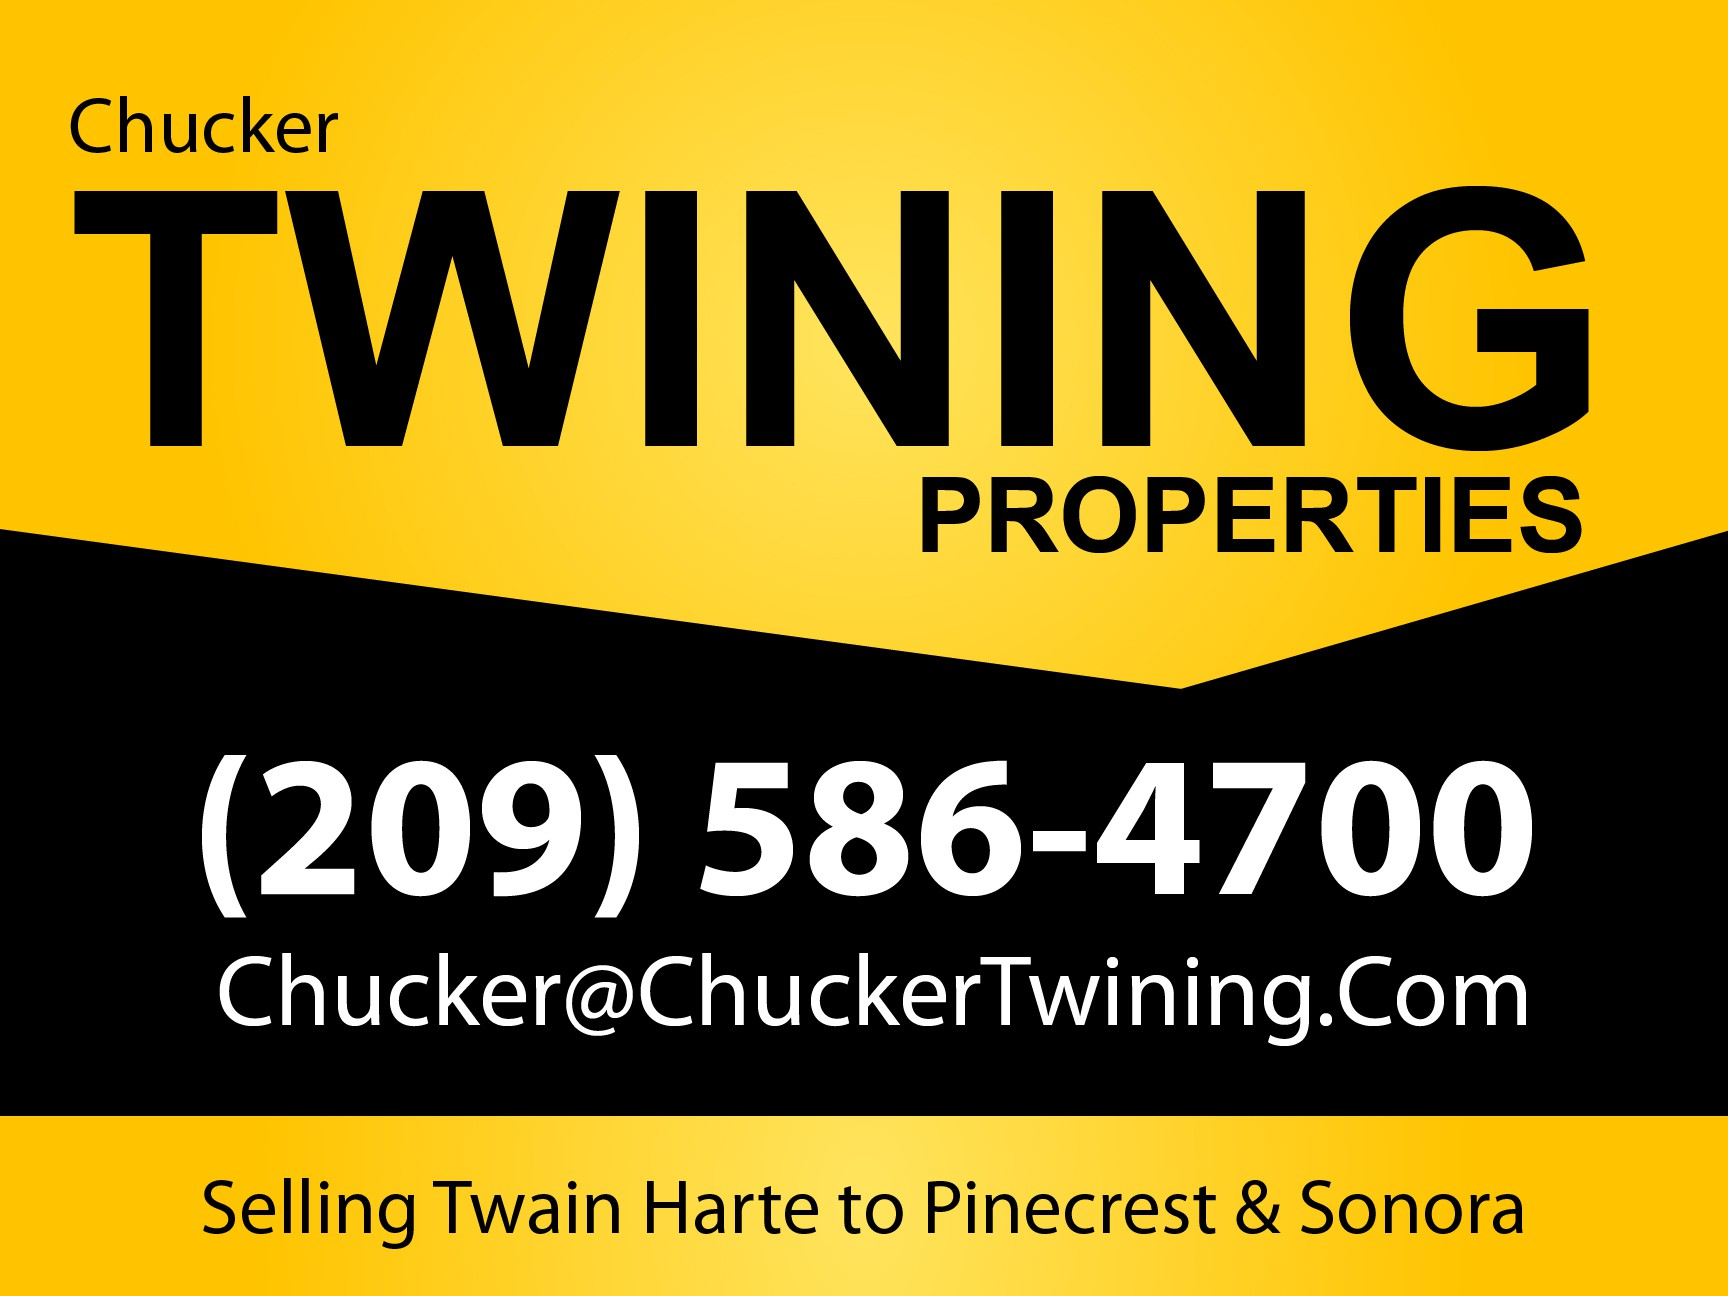 Create the next signage for Twining Properties